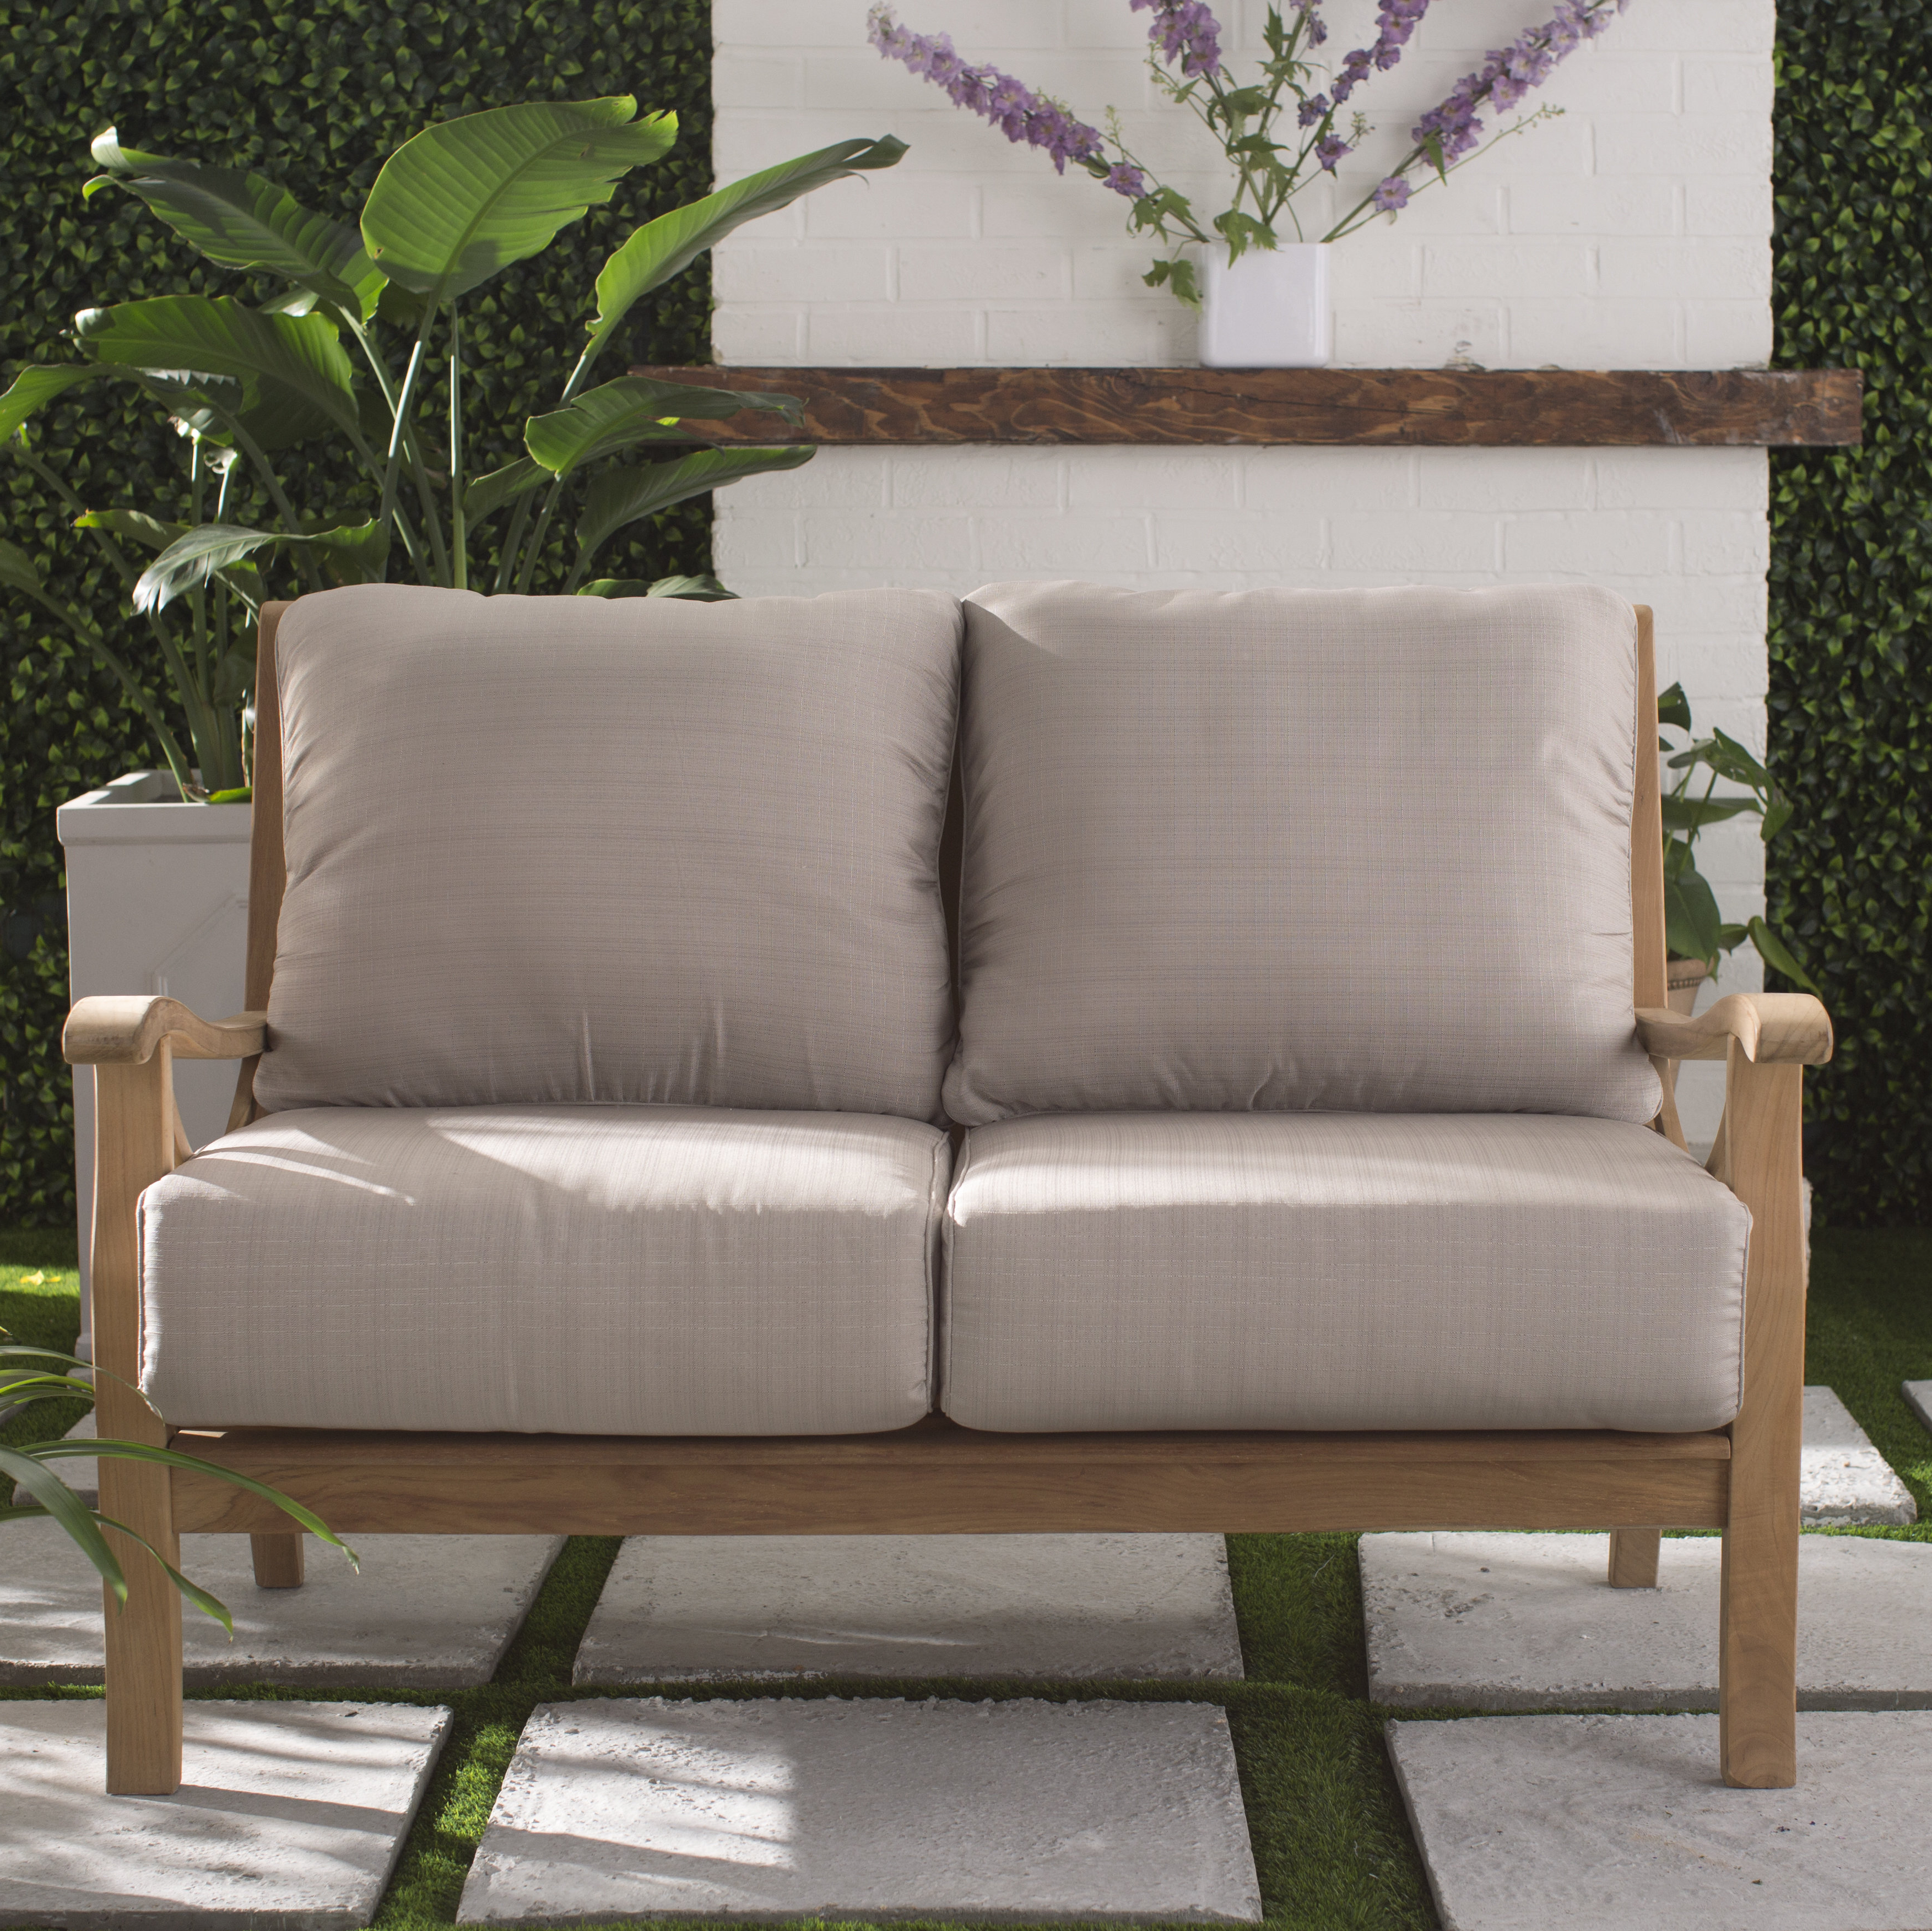 Brunswick Teak Loveseat With Cushions Intended For Most Recently Released Brunswick Teak Loveseats With Cushions (View 3 of 20)